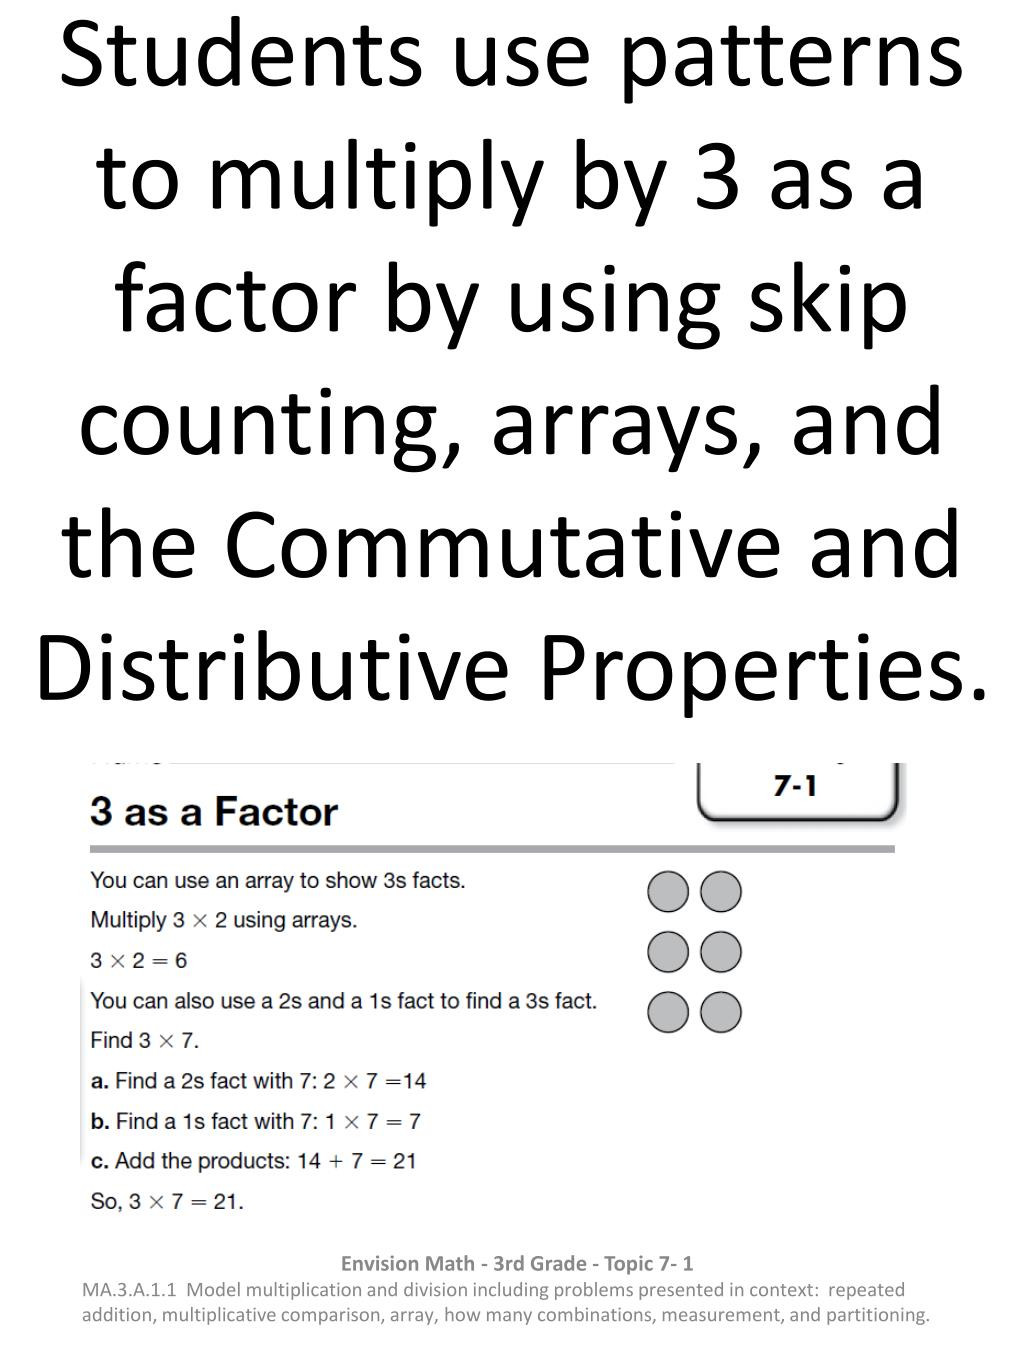 Distributive Property Worksheet 3rd Grade Ppt Students Use Patterns to Multiply by 3 as A Factor by